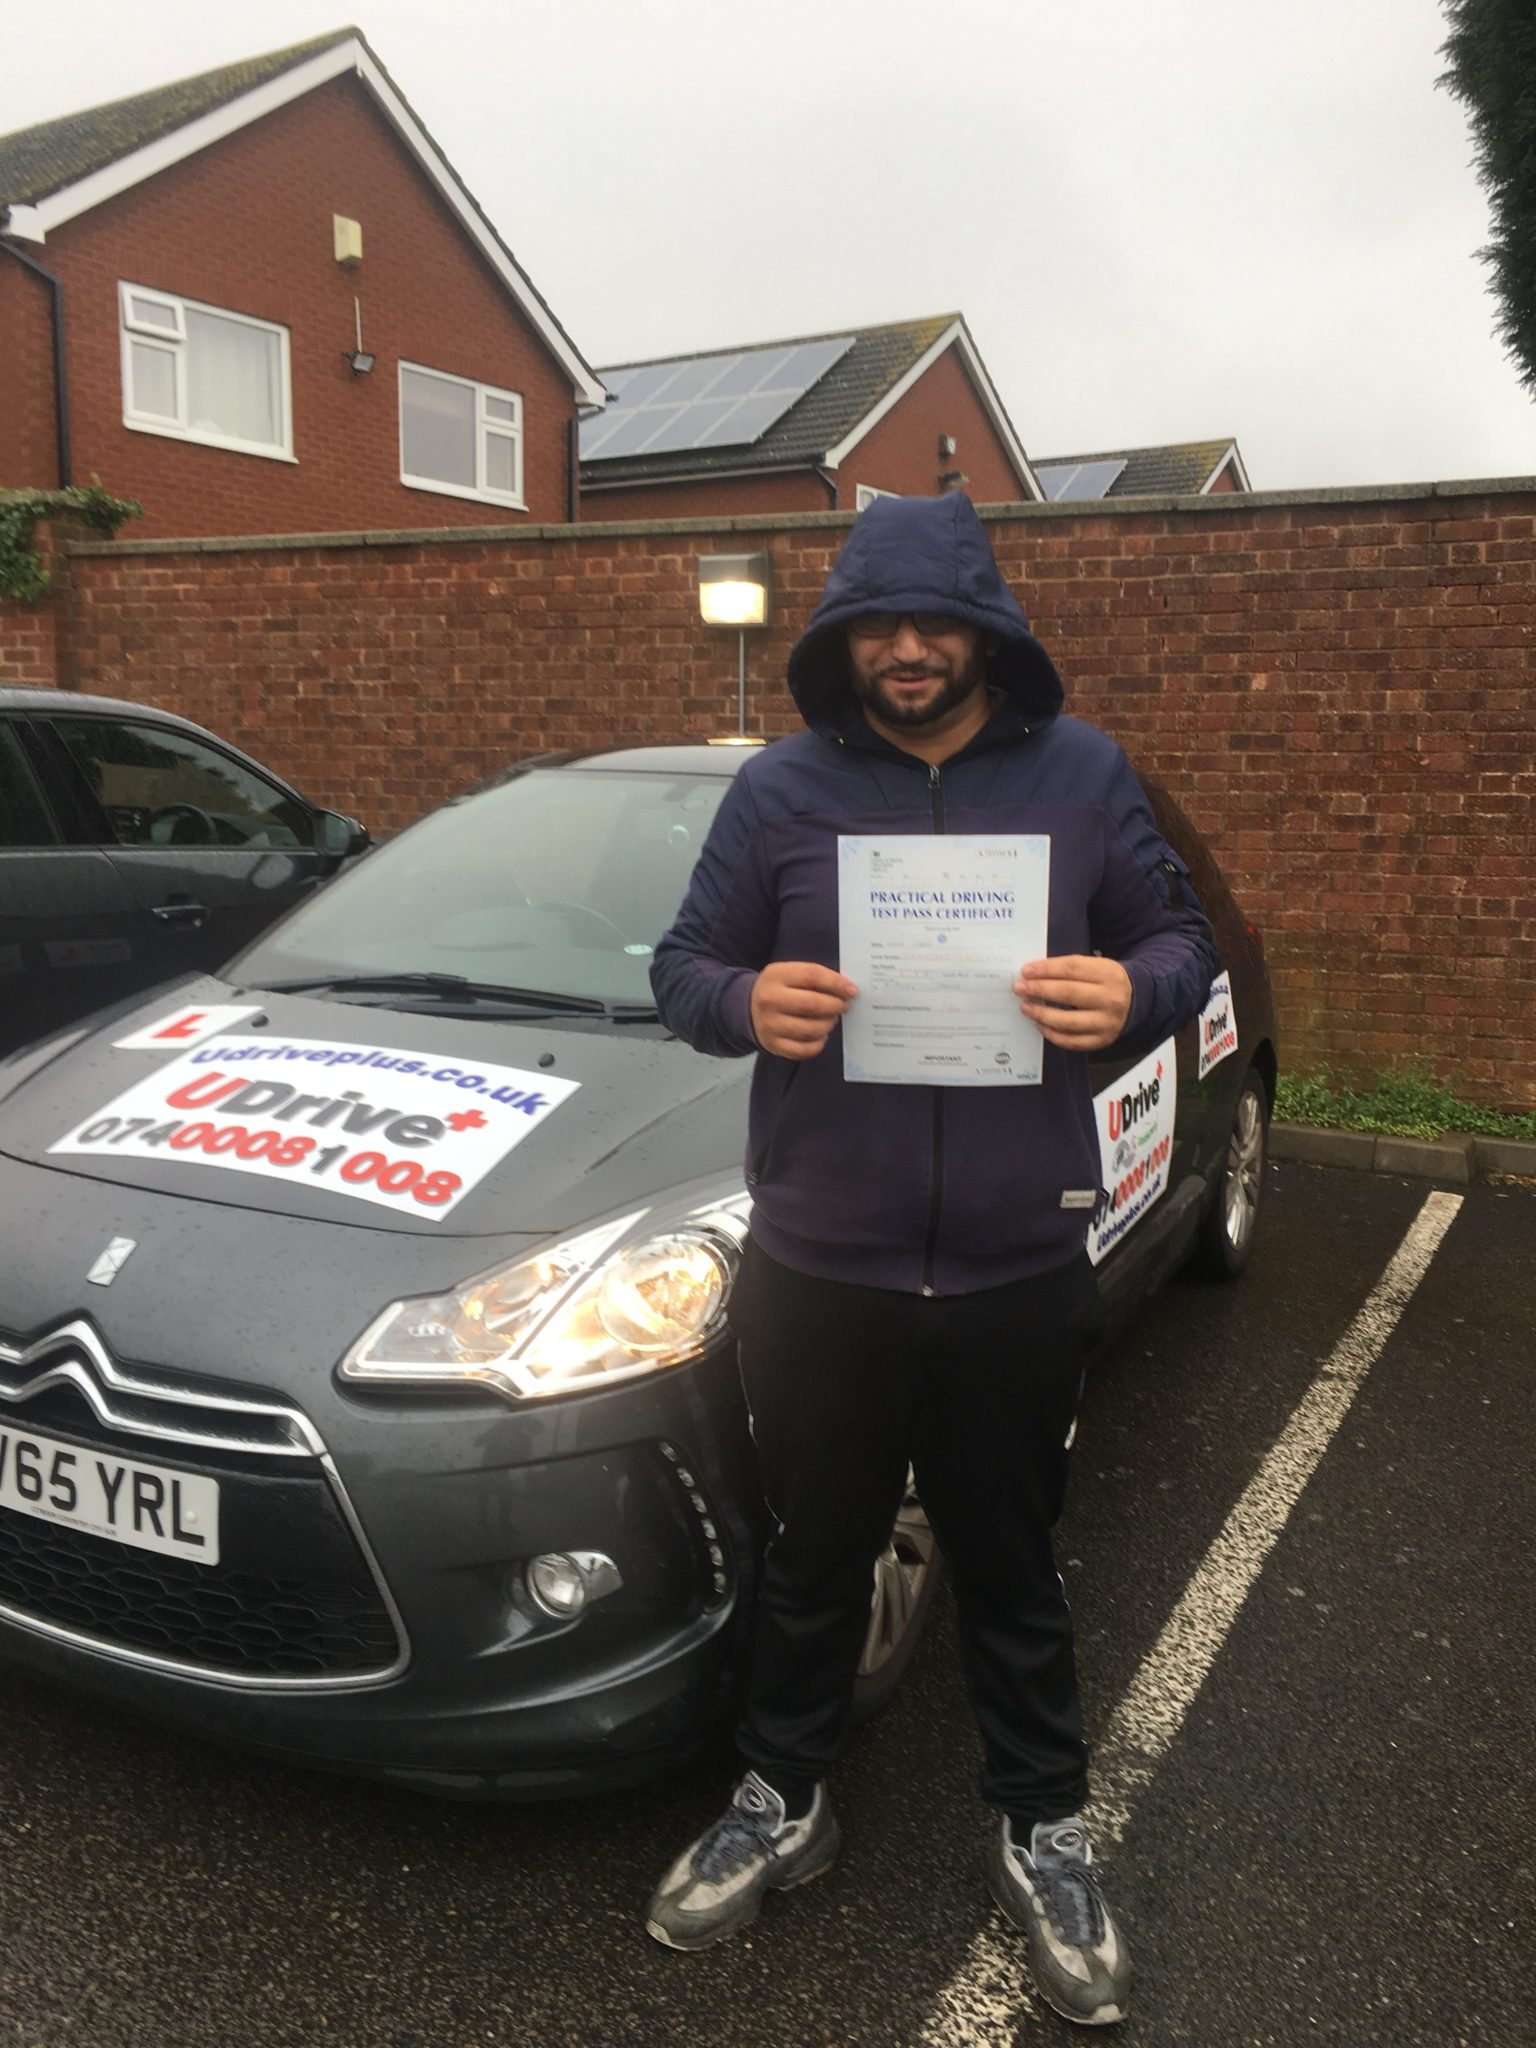 Passed Coventry only 4 minors